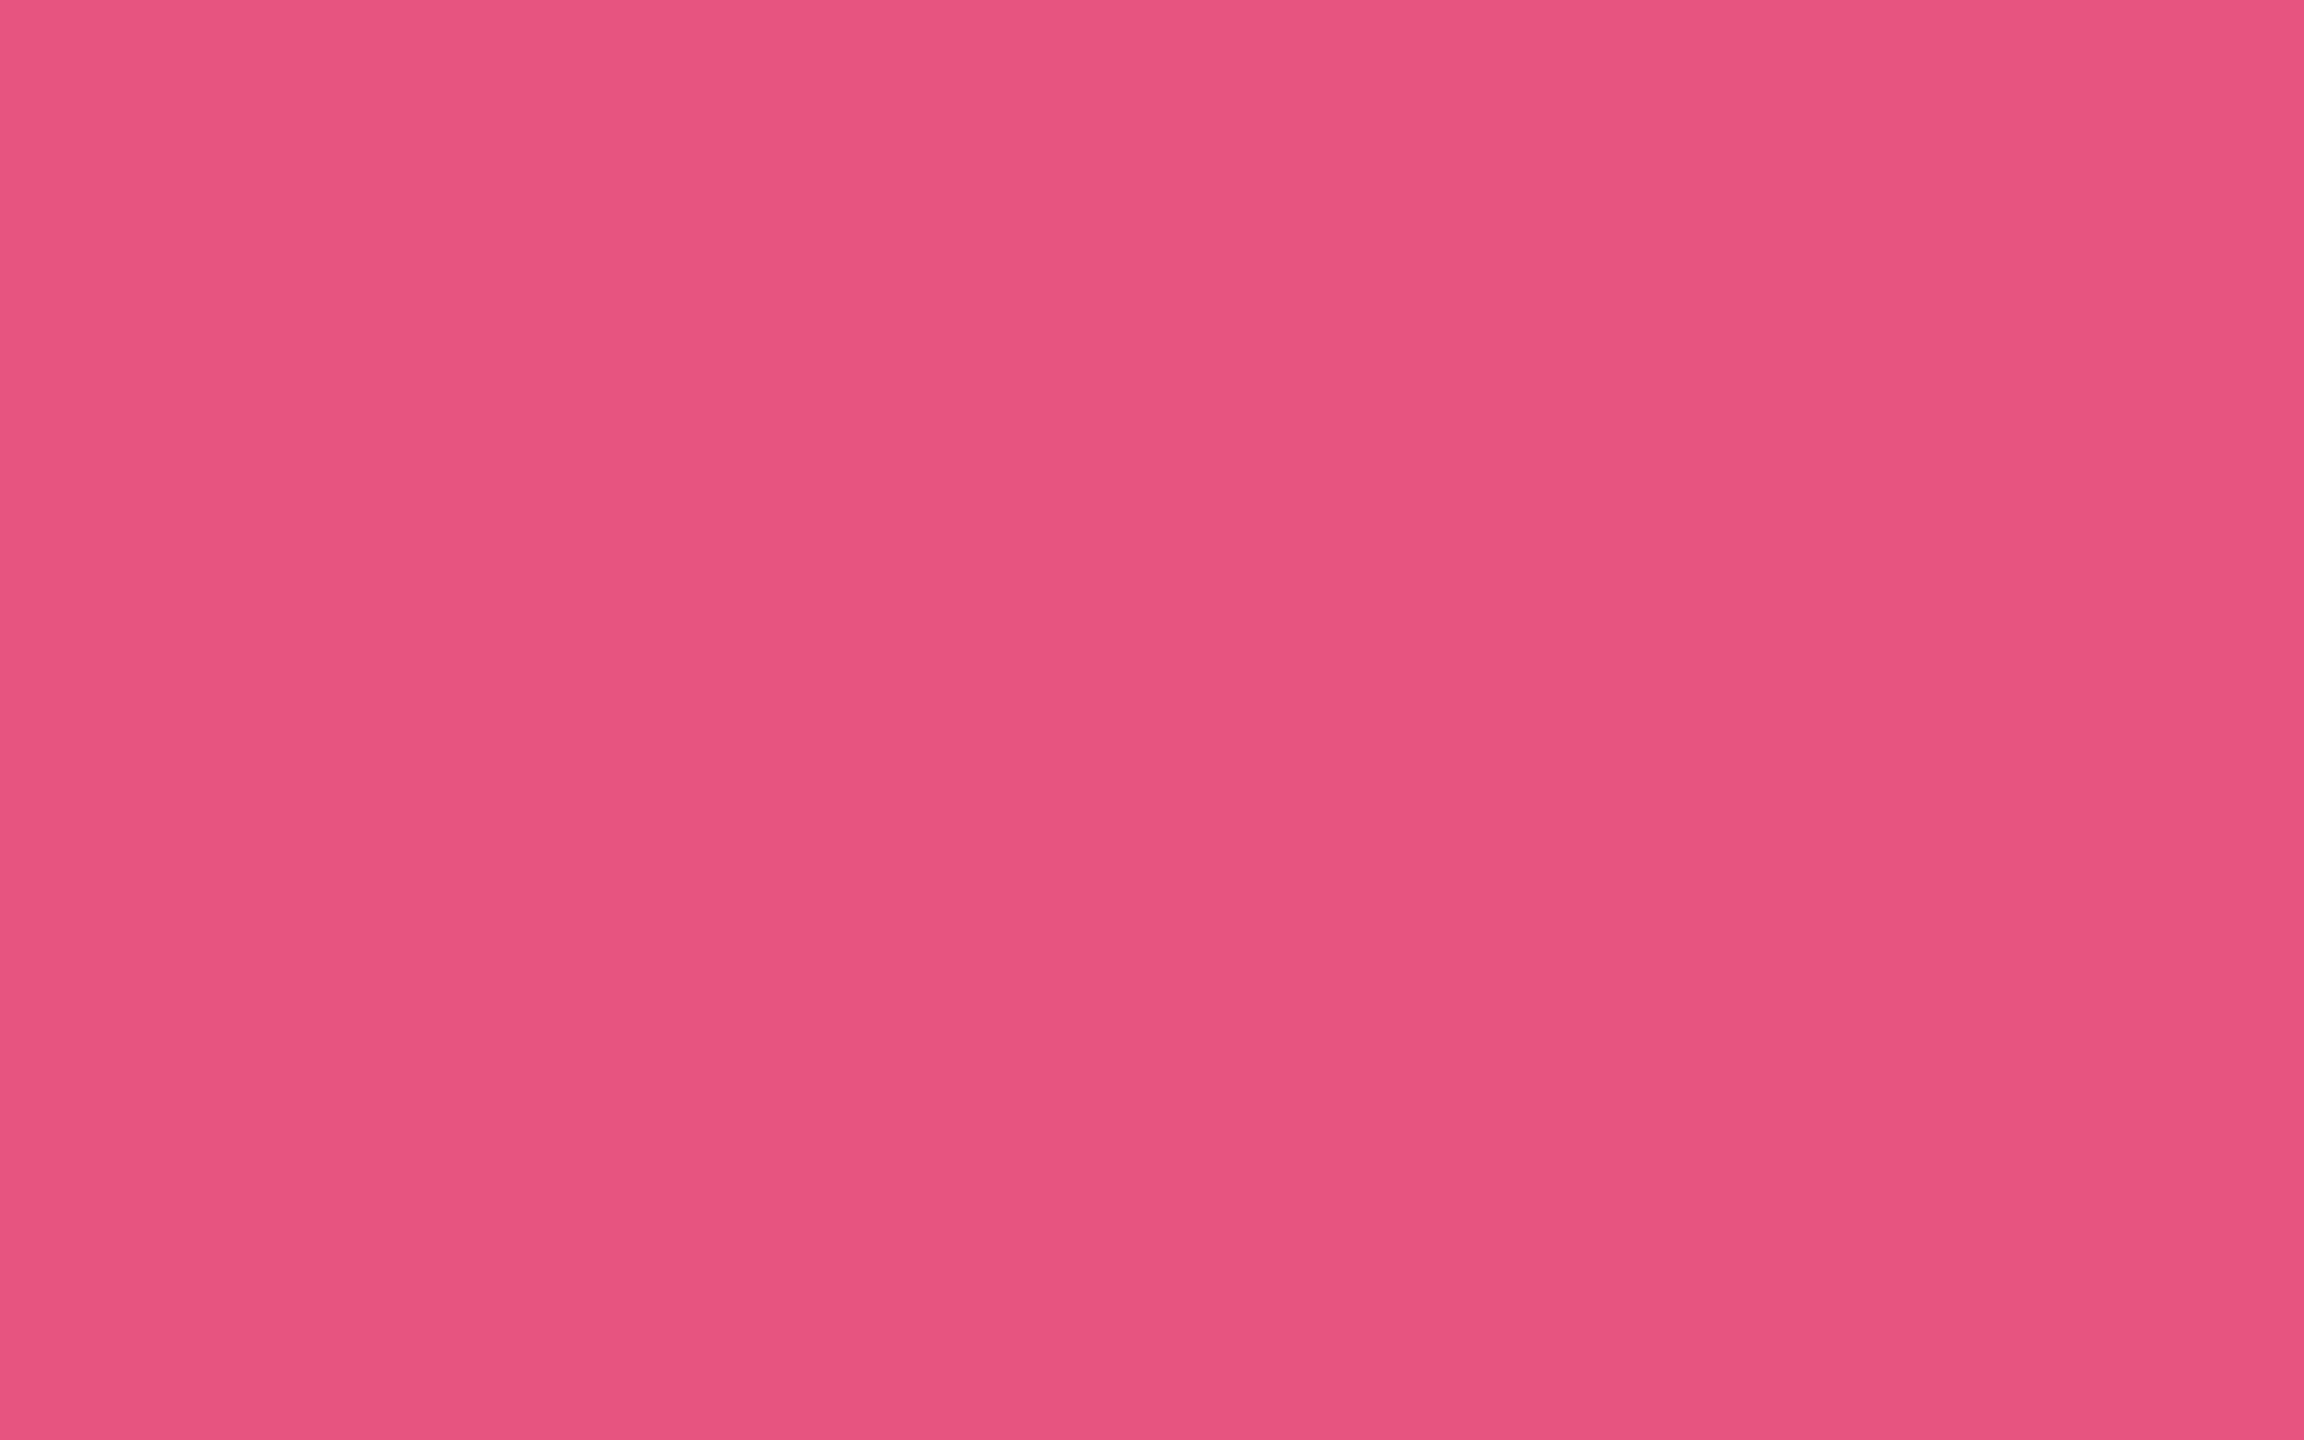 2304x1440 Dark Pink Solid Color Background